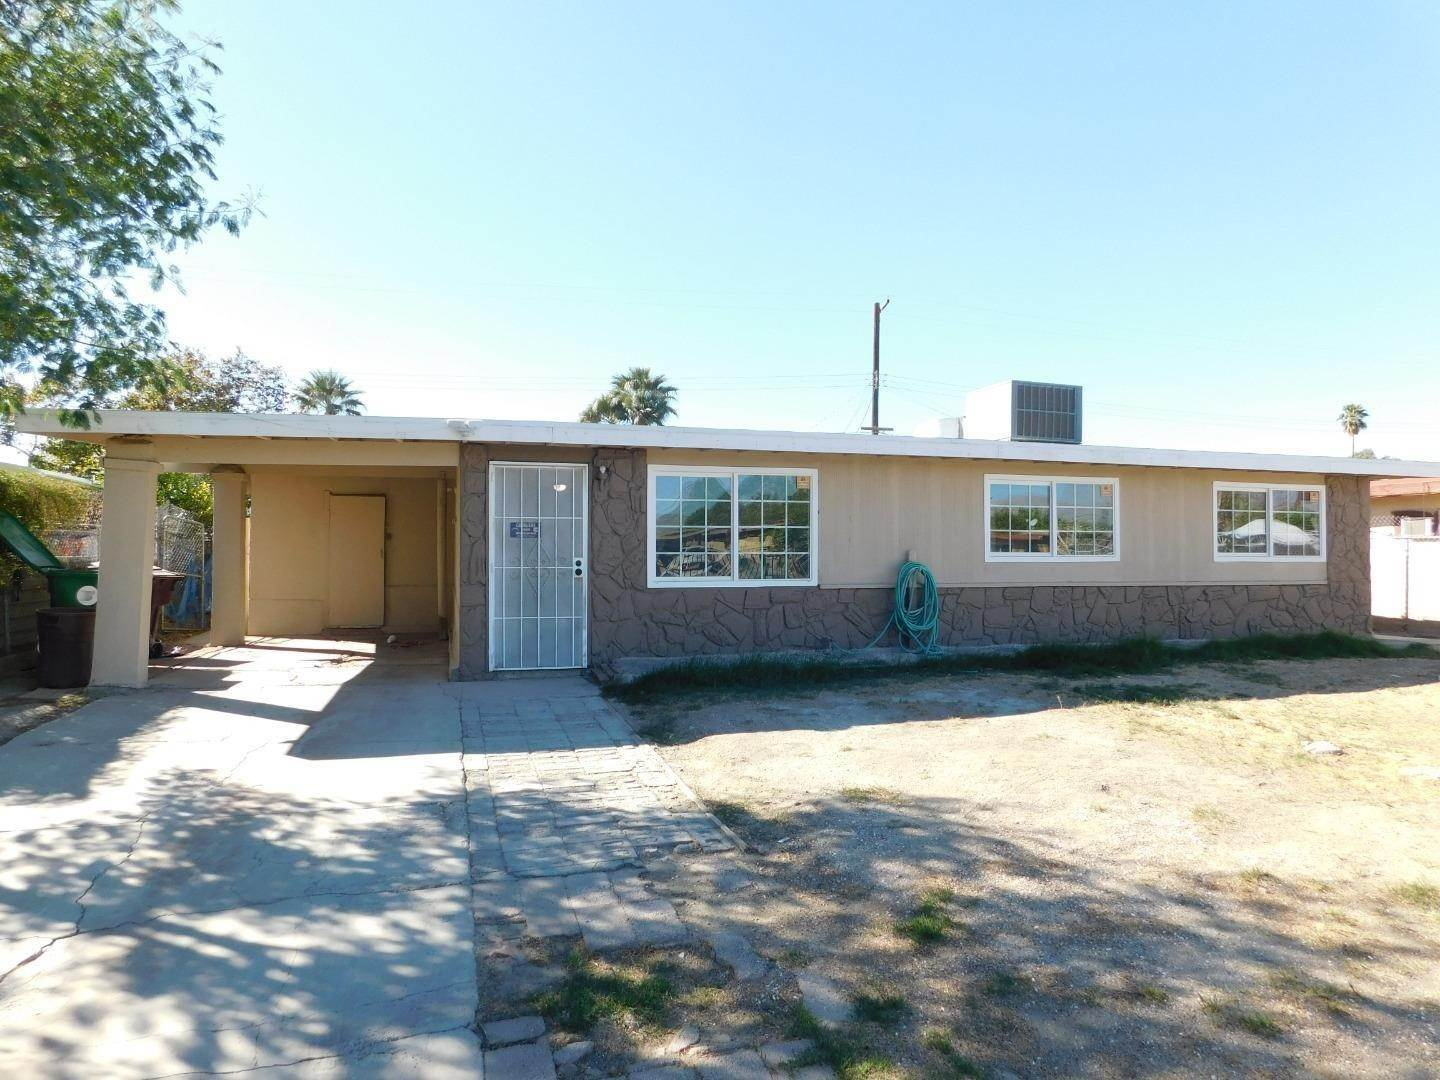 Single Family Homes for Sale at 52335 Cypress Street Coachella, California 92236 United States